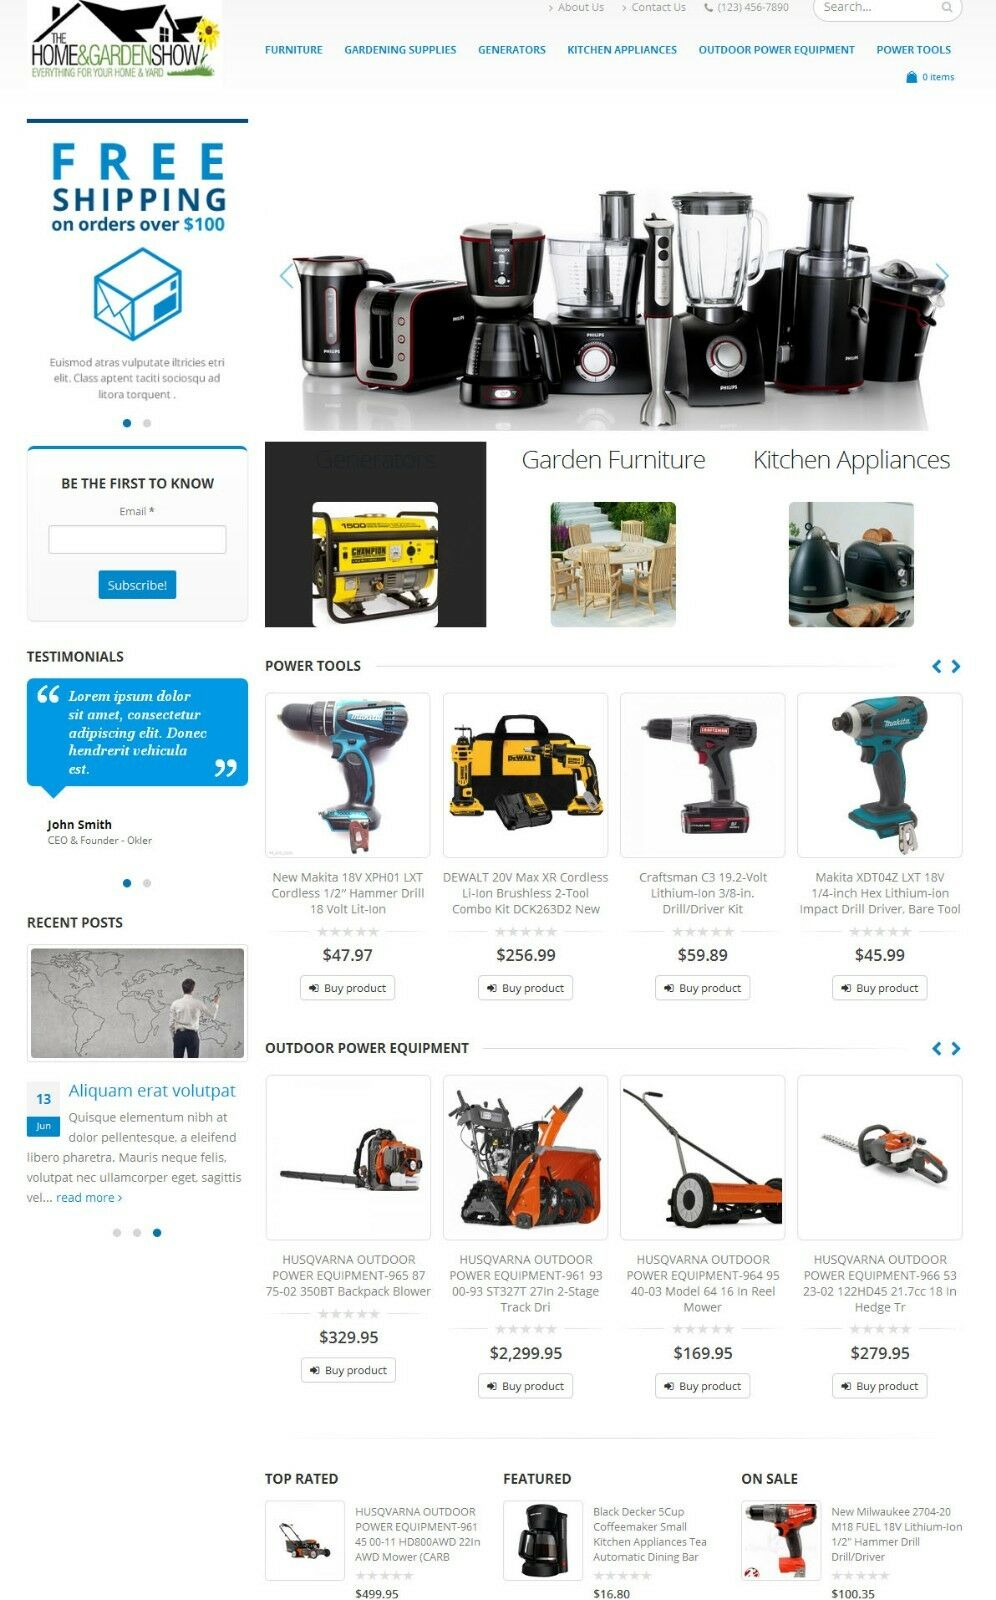 Home and Garden Tools Store Website - Amazon Affiliate Store on AutoPilot